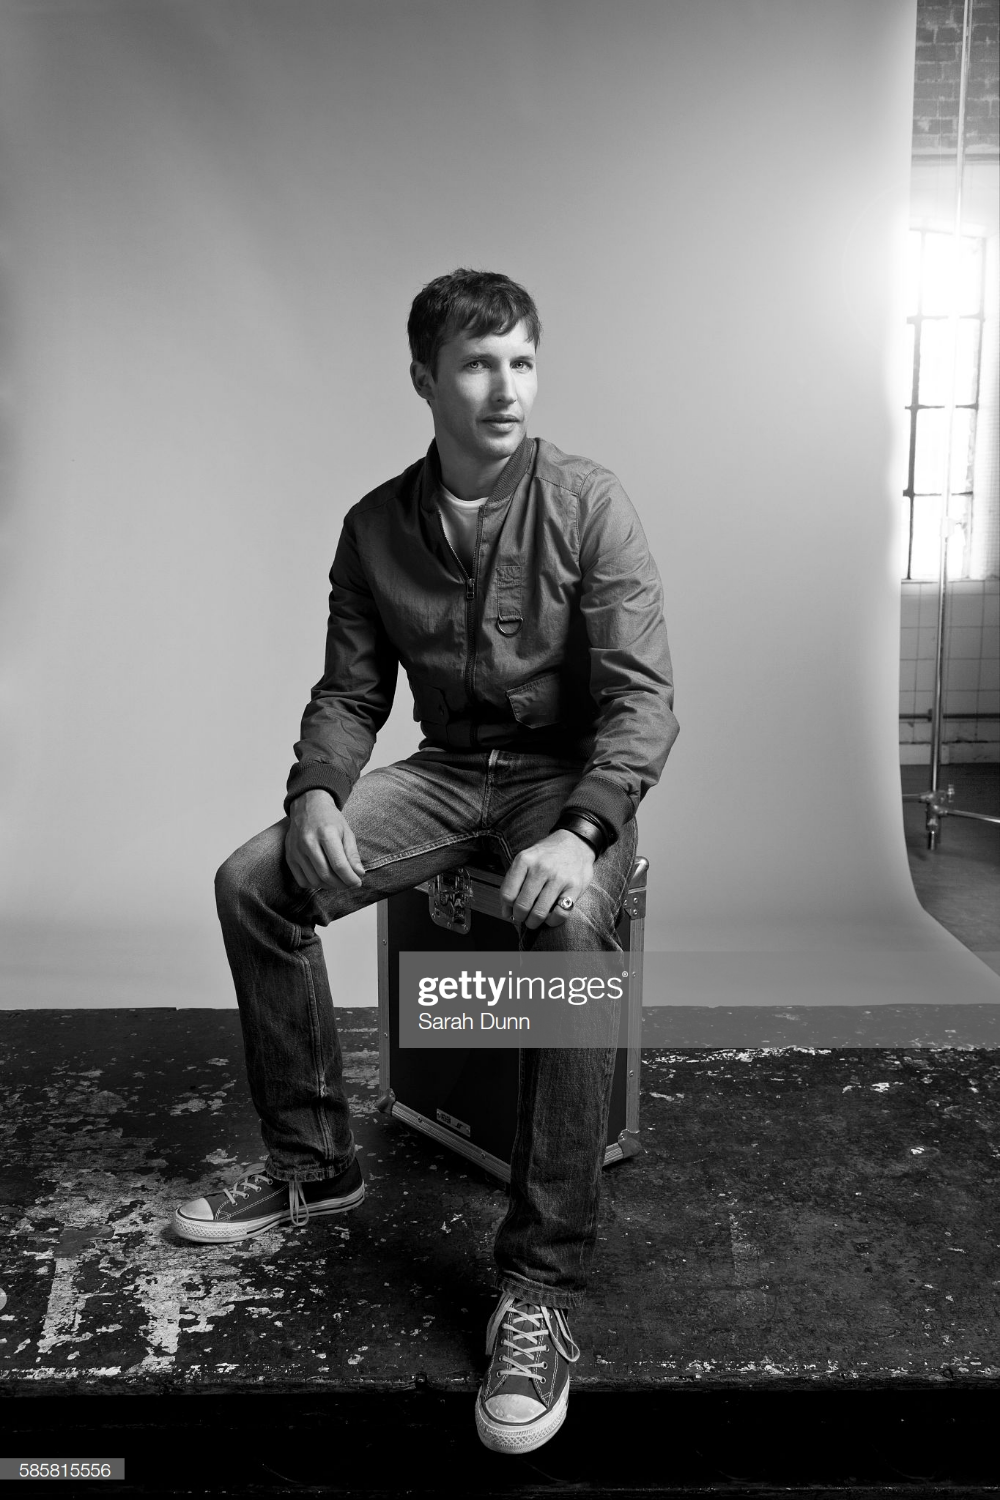 James Blunt is photographed for Red magazine on September 10, 2013 in London, England. (Photo by Sarah Dunn/Contour by Getty Images)